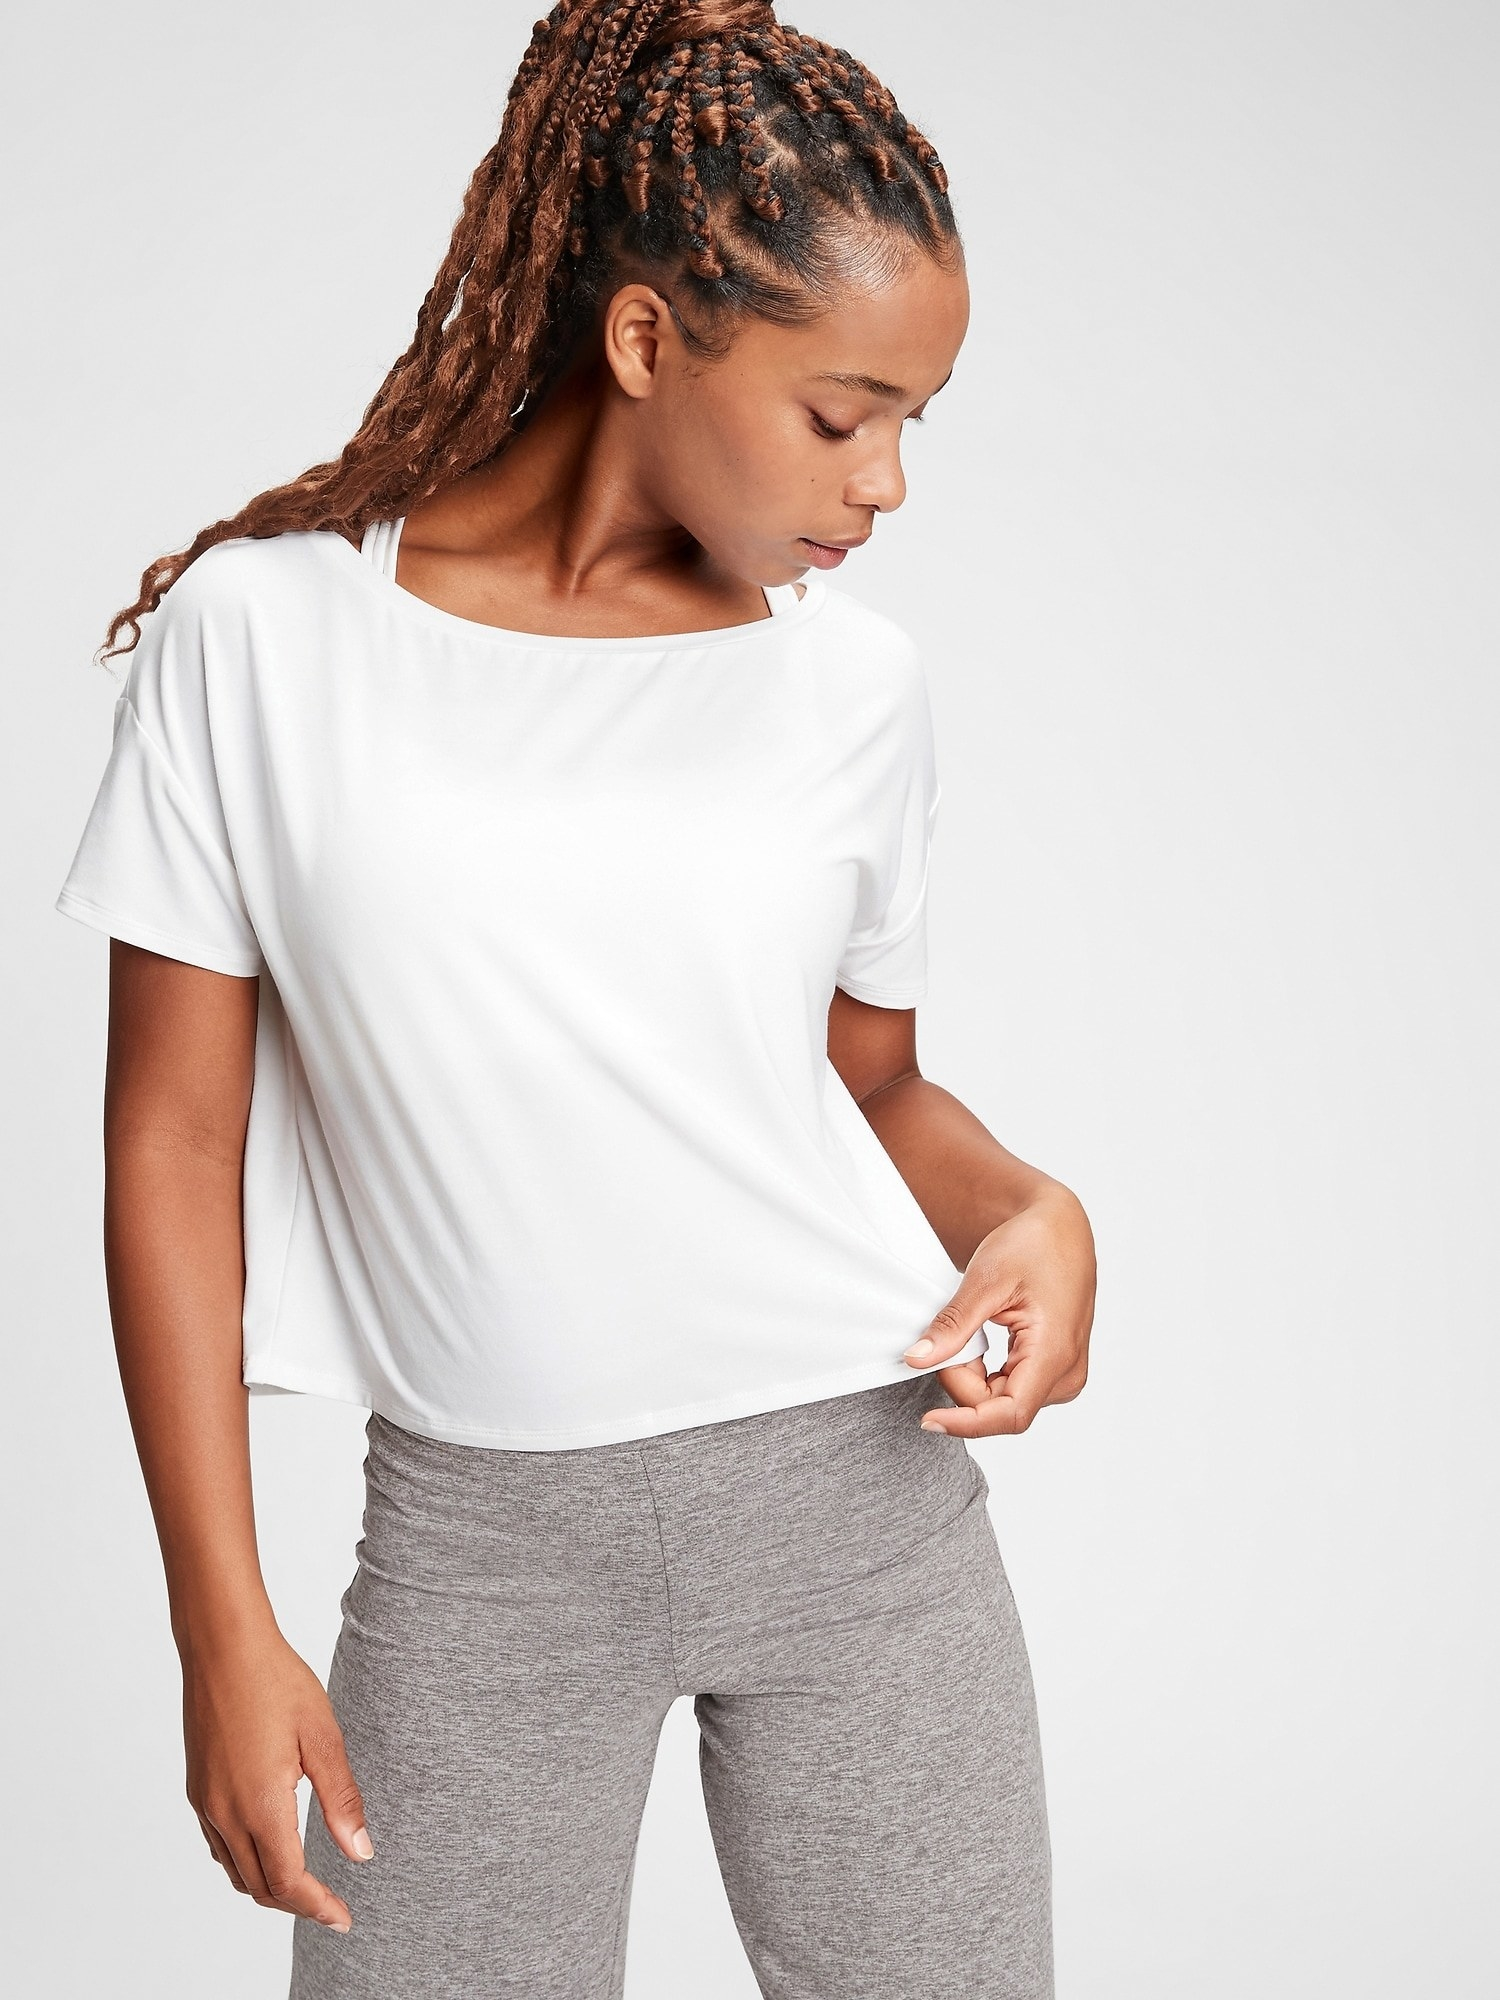 A person wearing the GAPfit t-shirt with a pair of leggings